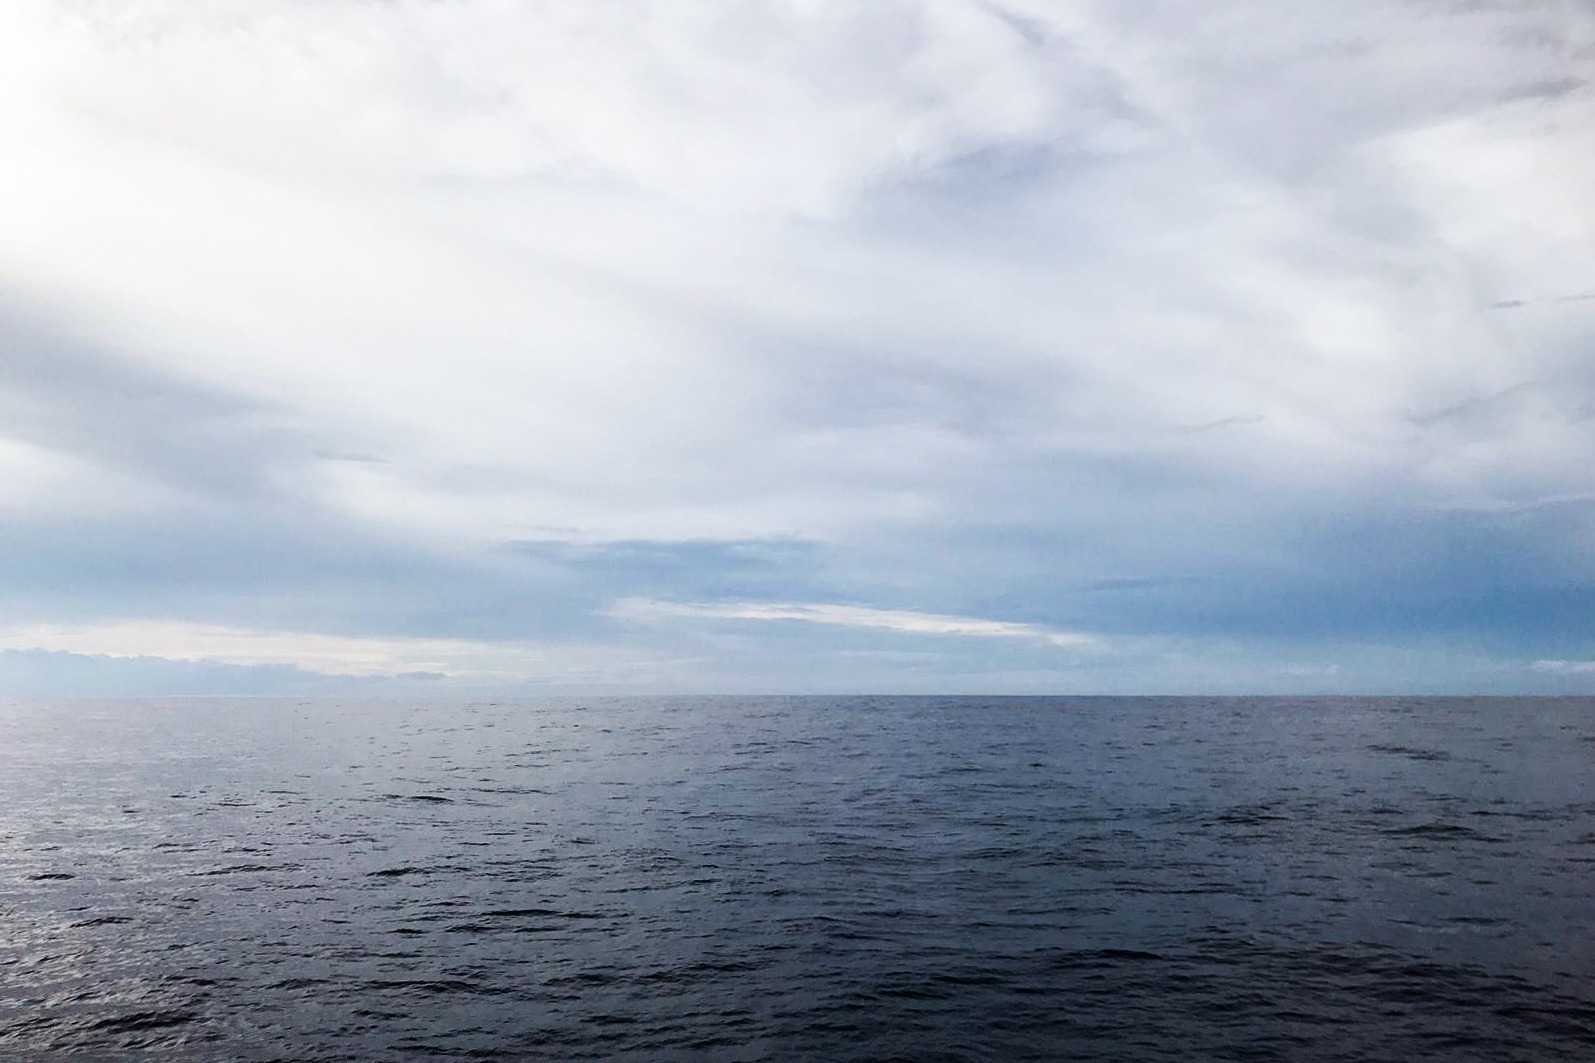 View of the doldrums from 11th Hour Racing Team on Day 11 of the Transat Jacques Vabre.